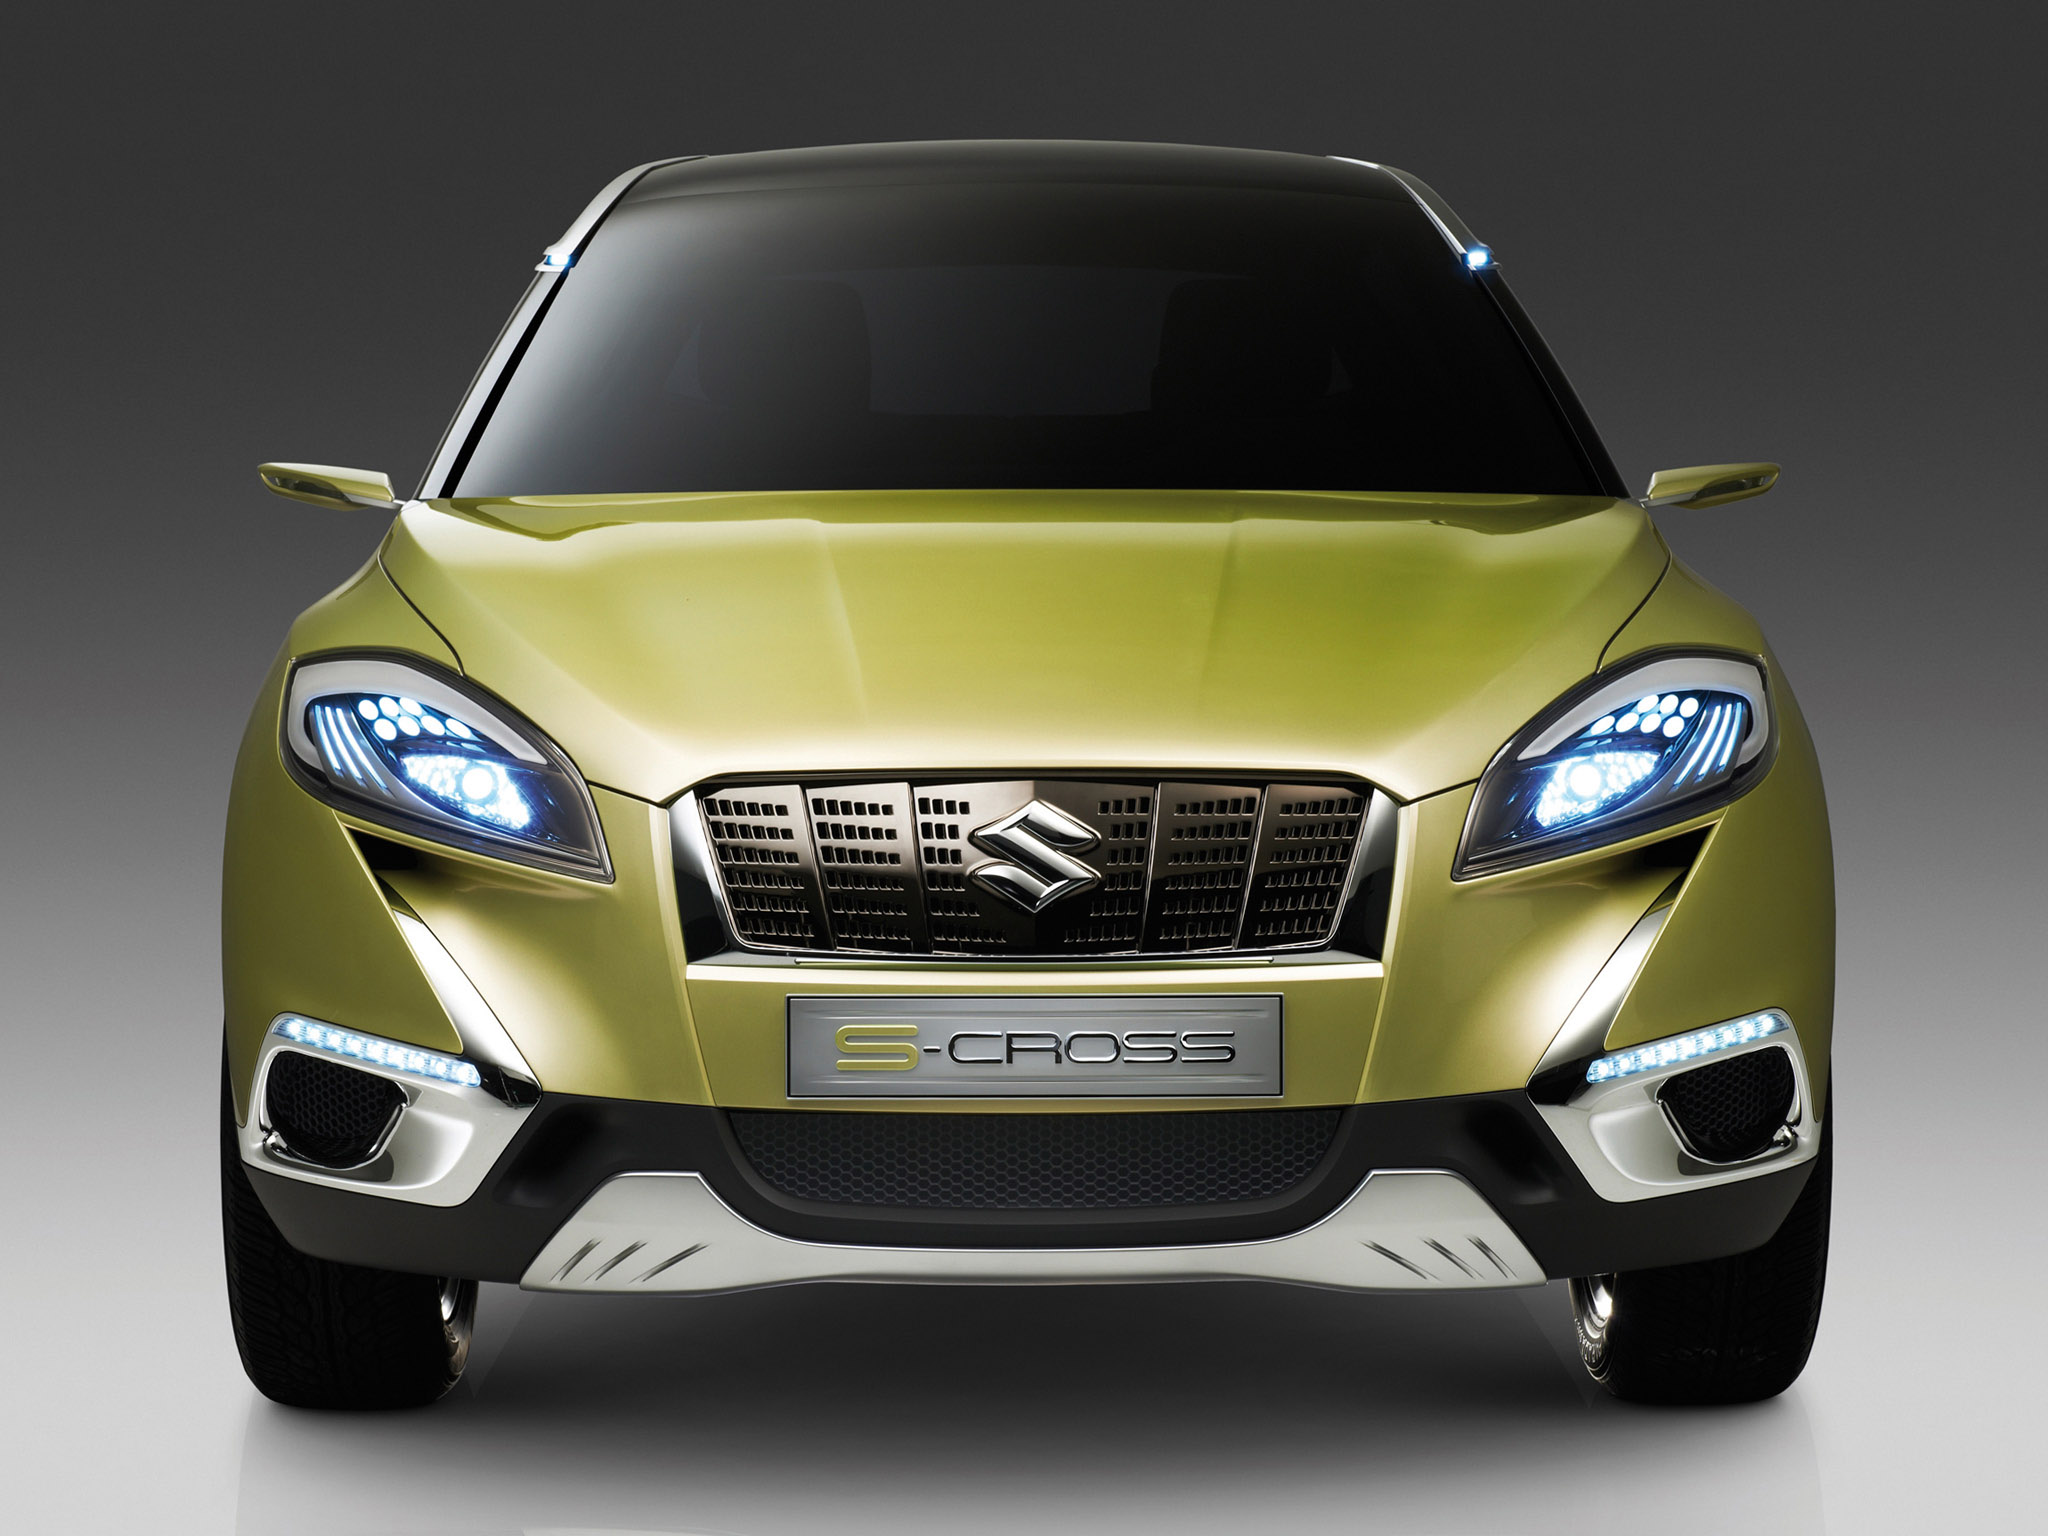 Suzuki s cross concept Sport Desktop Backgrounds